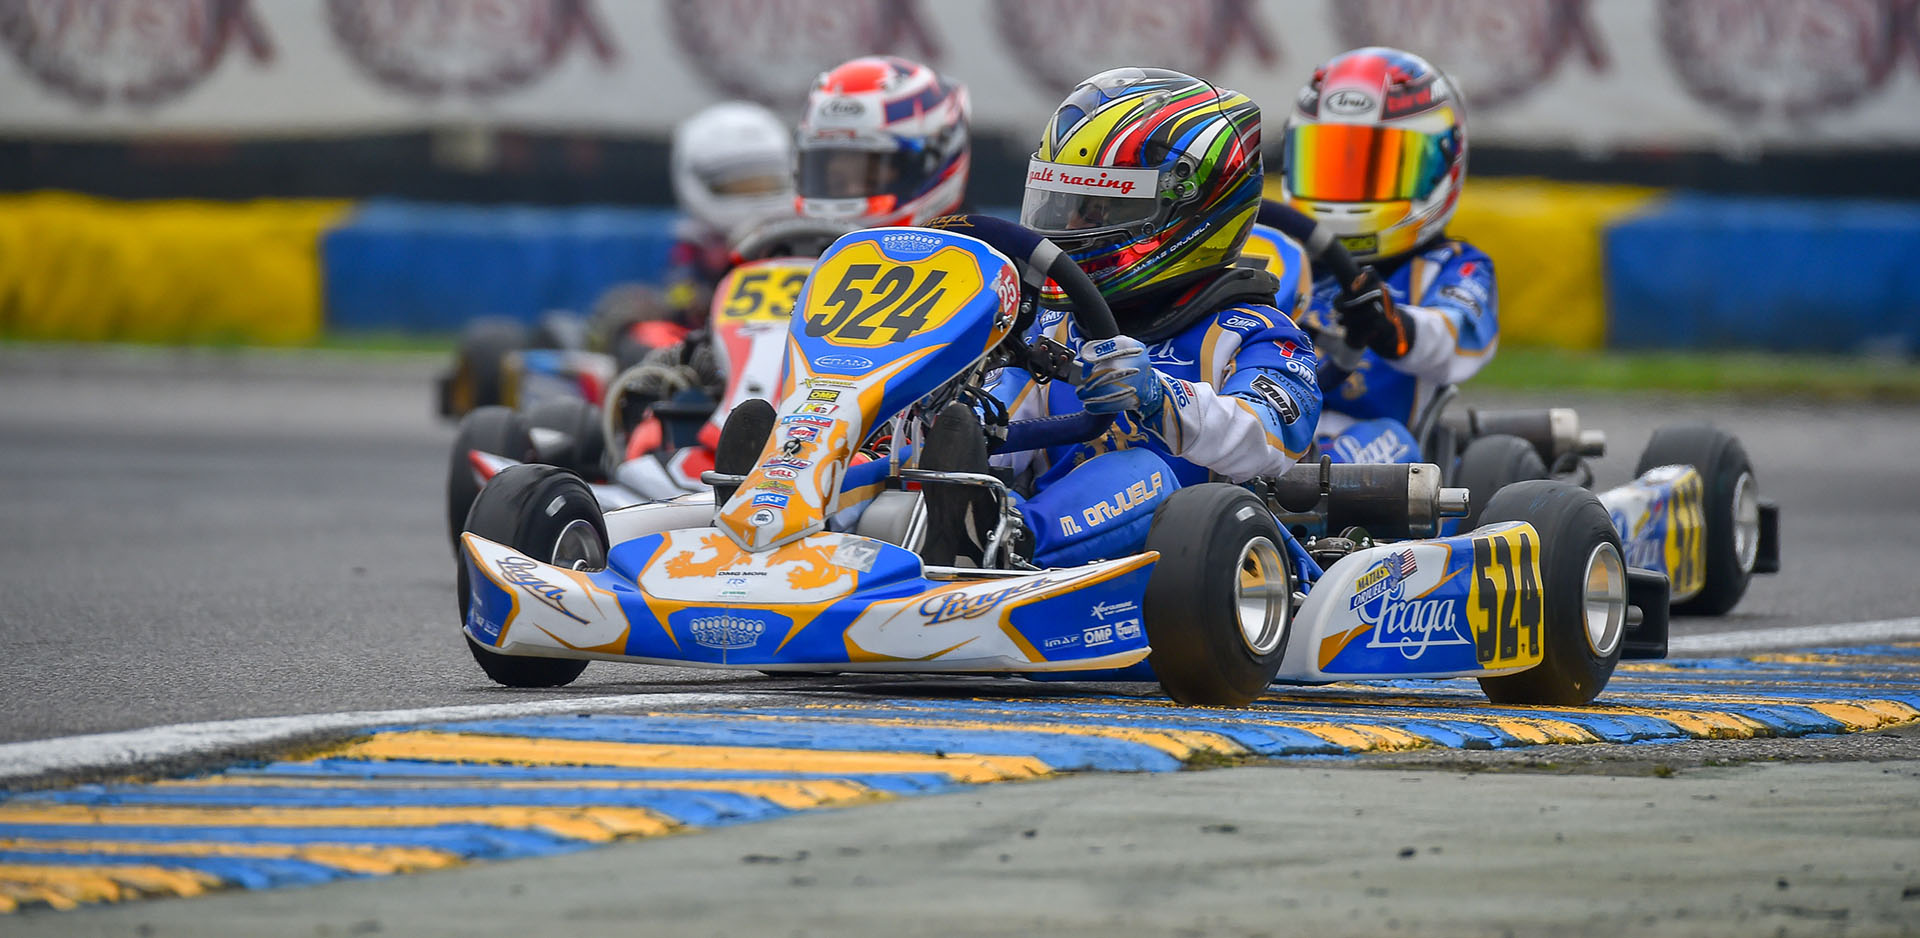 Praga | Pole position and the podium in round 2 of the WSK Open Cup